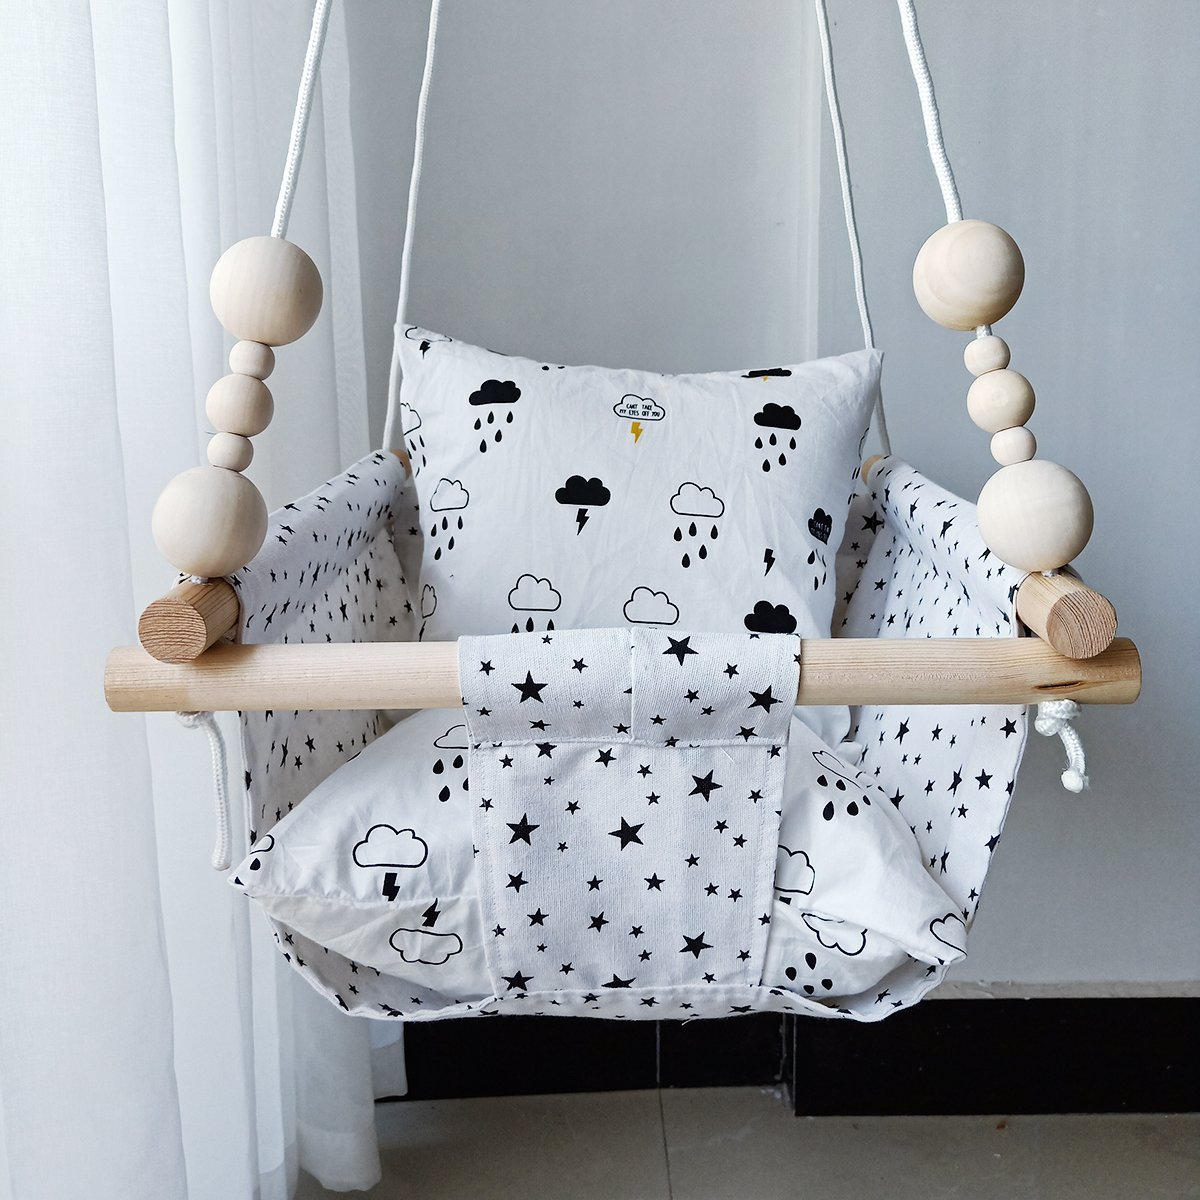 Hb Ye Handmade Safety Canvas Baby Swing Chair Portable Hanging Seat